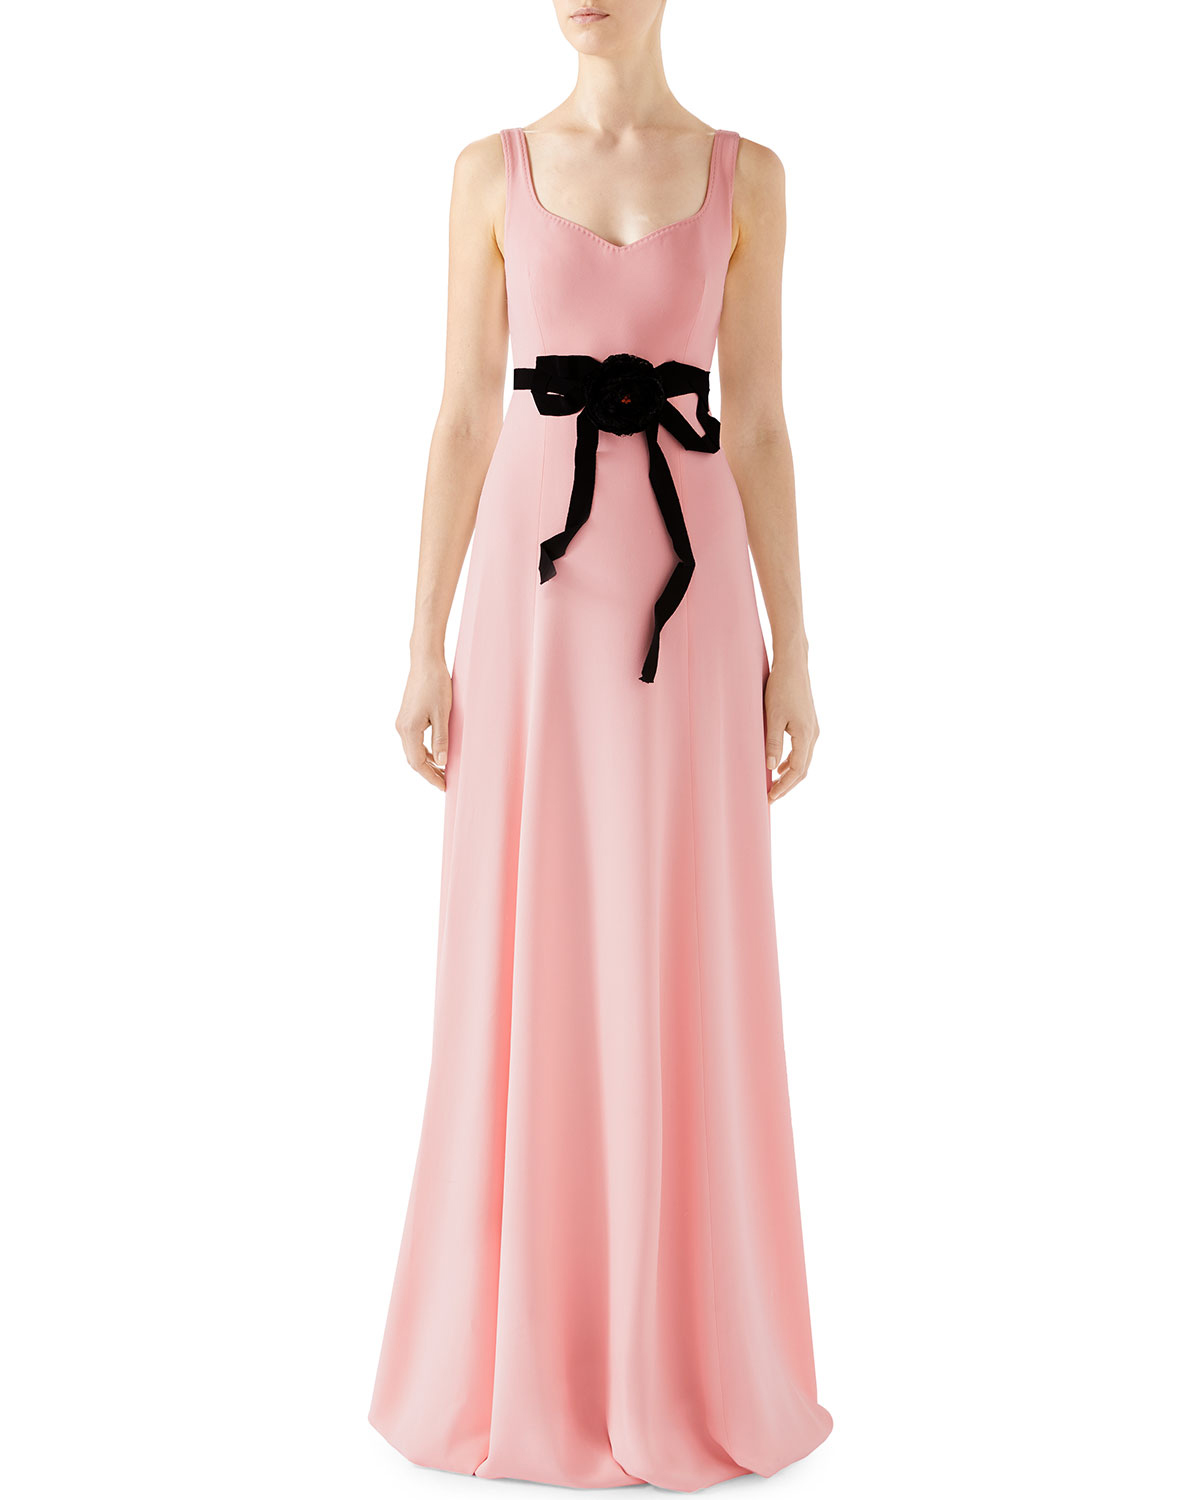 pink sheath bridesmaid dress with black bow tie